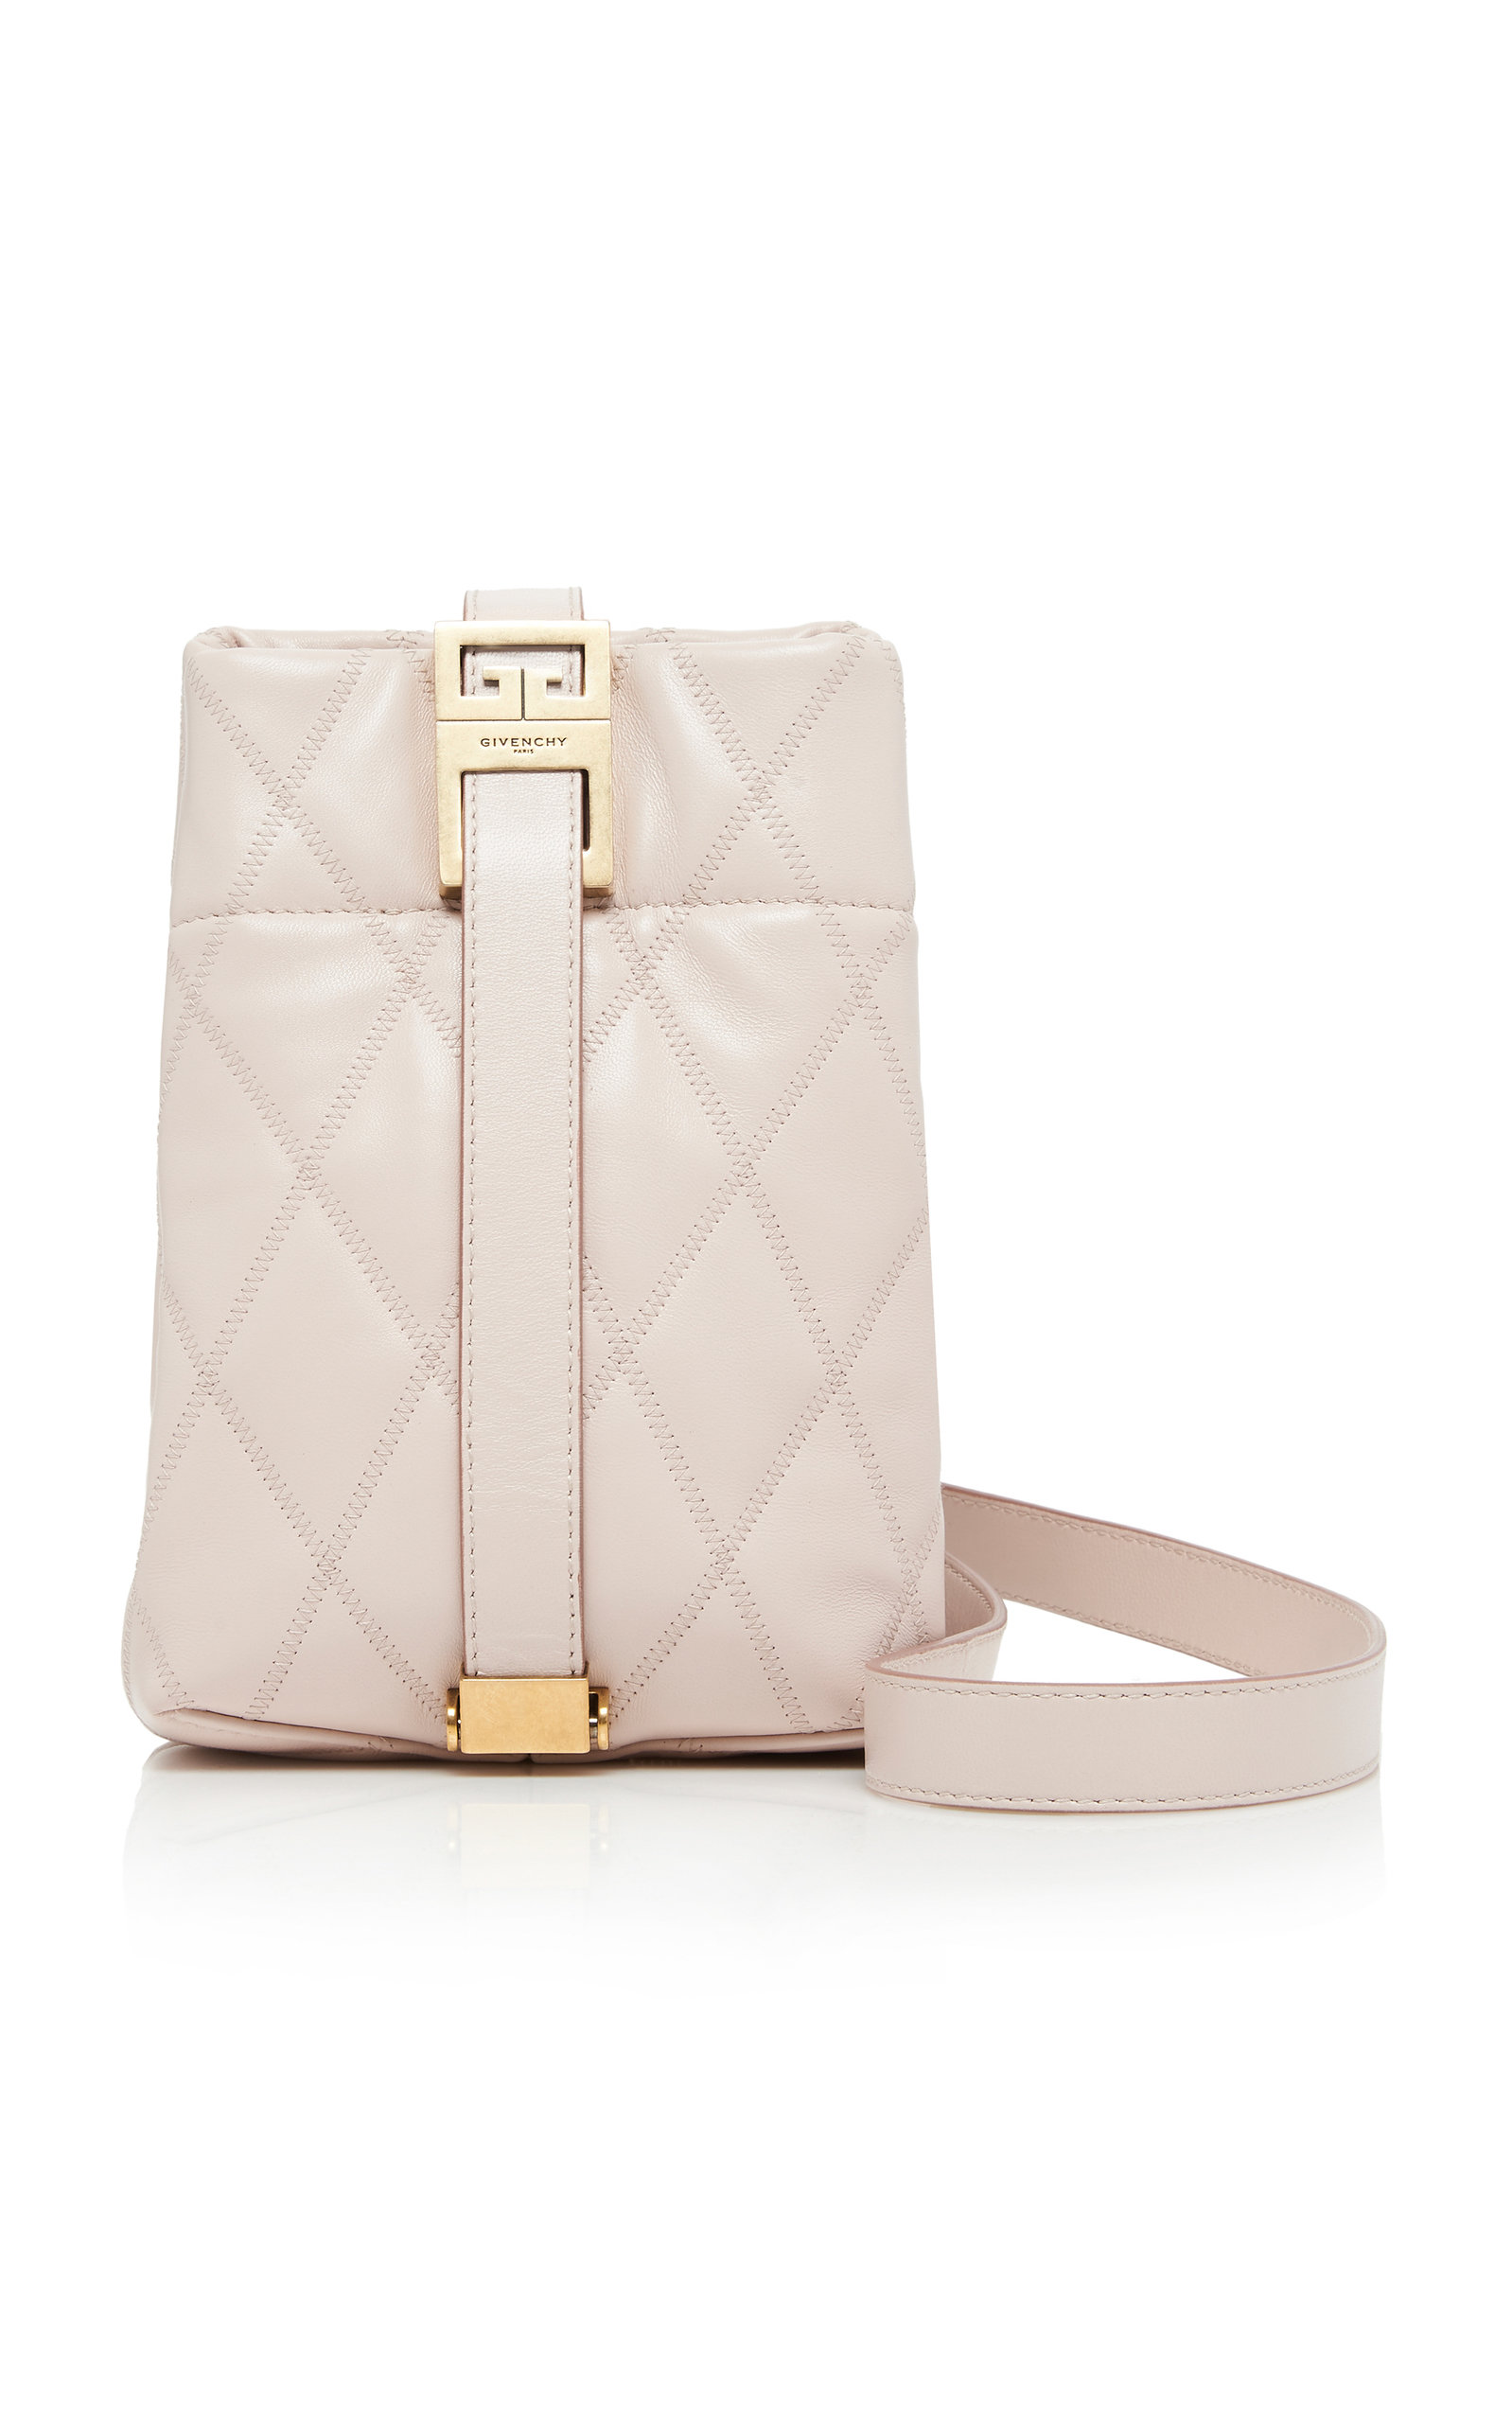 16d47198746b GivenchyGV Mini Quilted Leather Bucket Bag. CLOSE. Loading